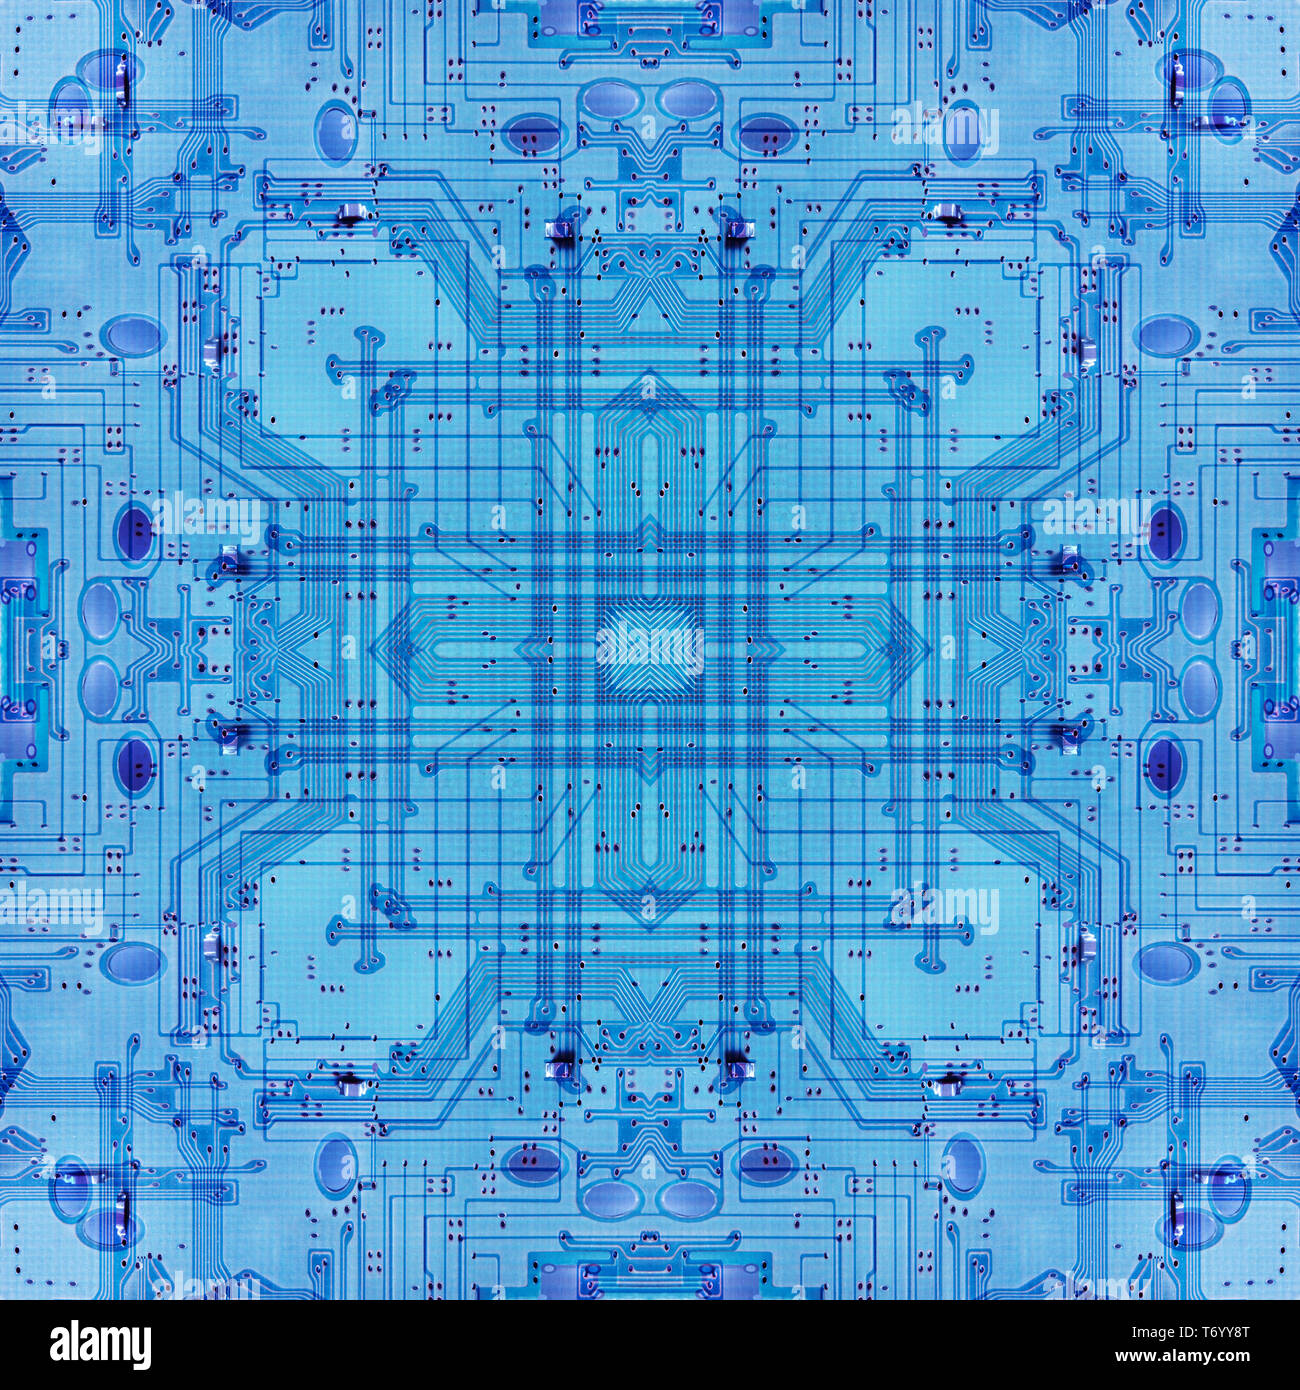 Abstract Illustration Electrical Circuit Board Stock Photos